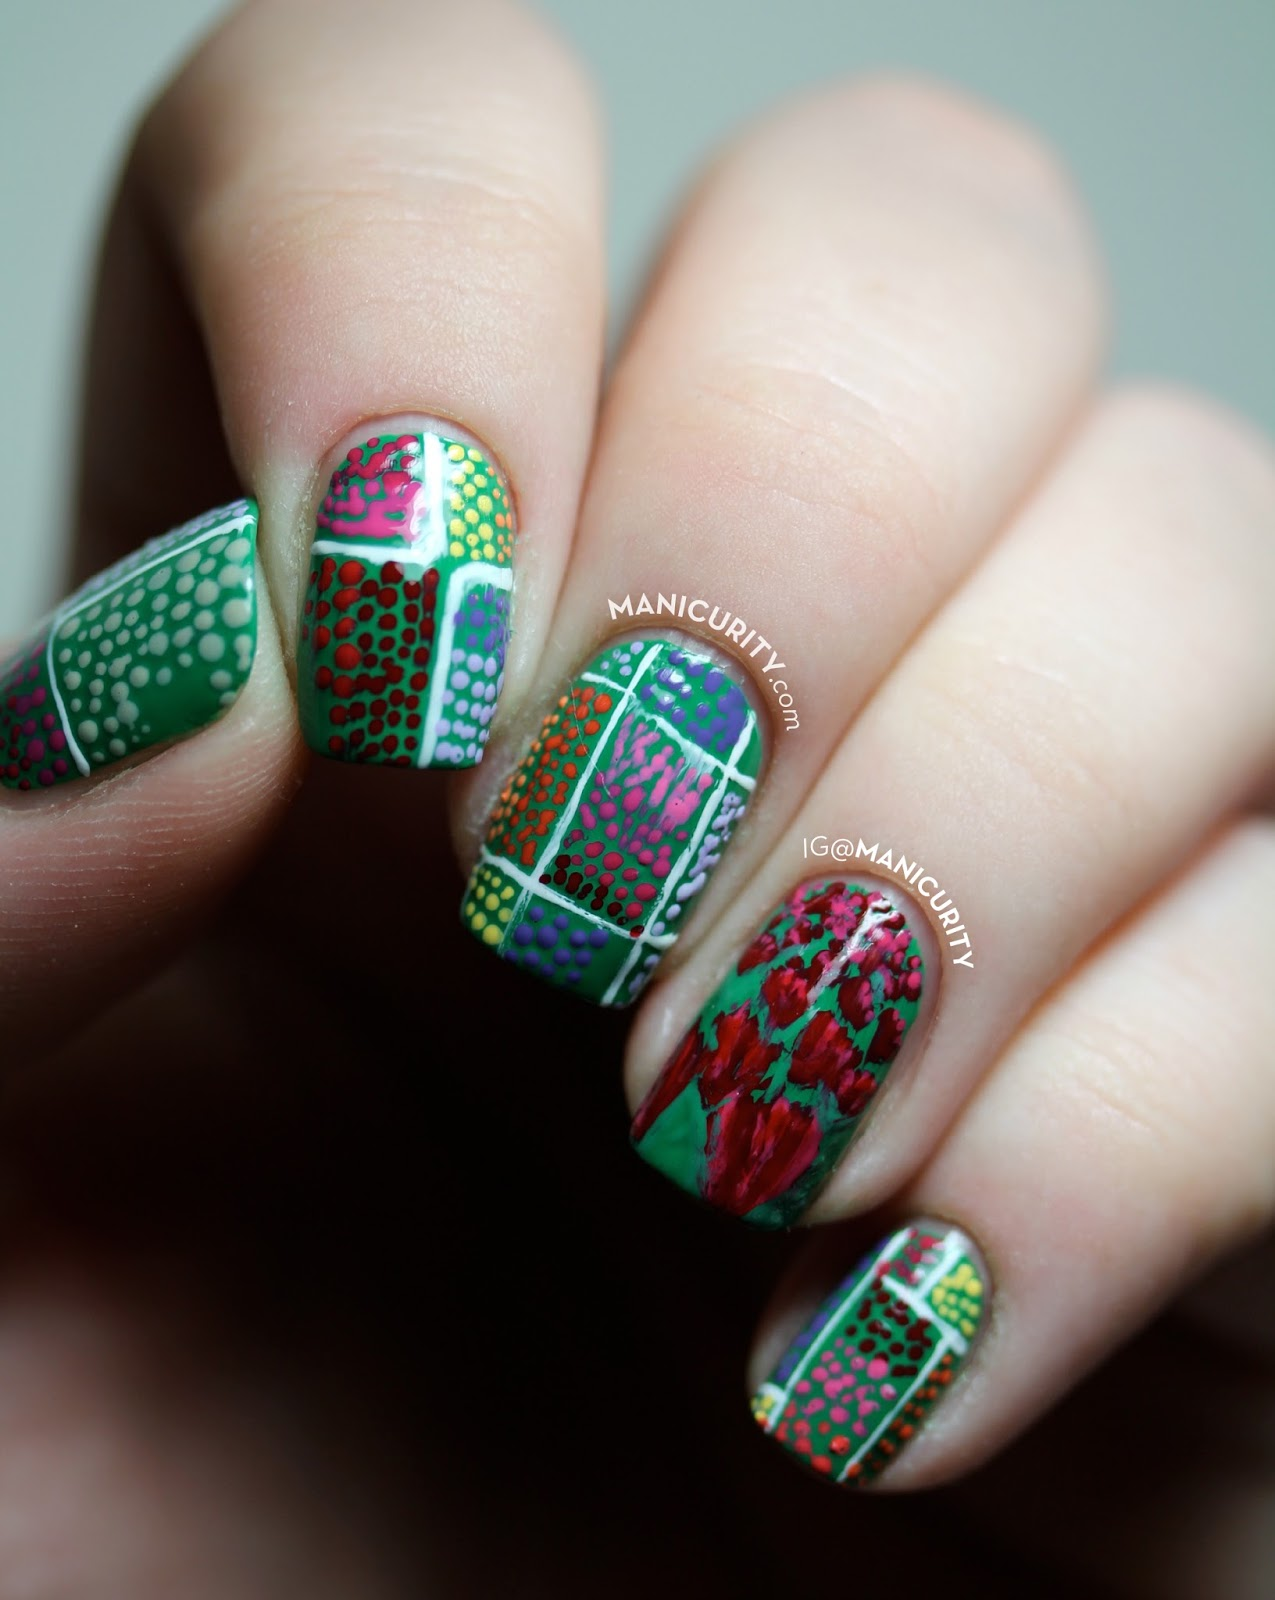 The Digit-al Dozen does Countries + Cultures with Dutch Tulip Fields - freehand floral nails colorful dotticure polka dot nail art - Manicurity.com